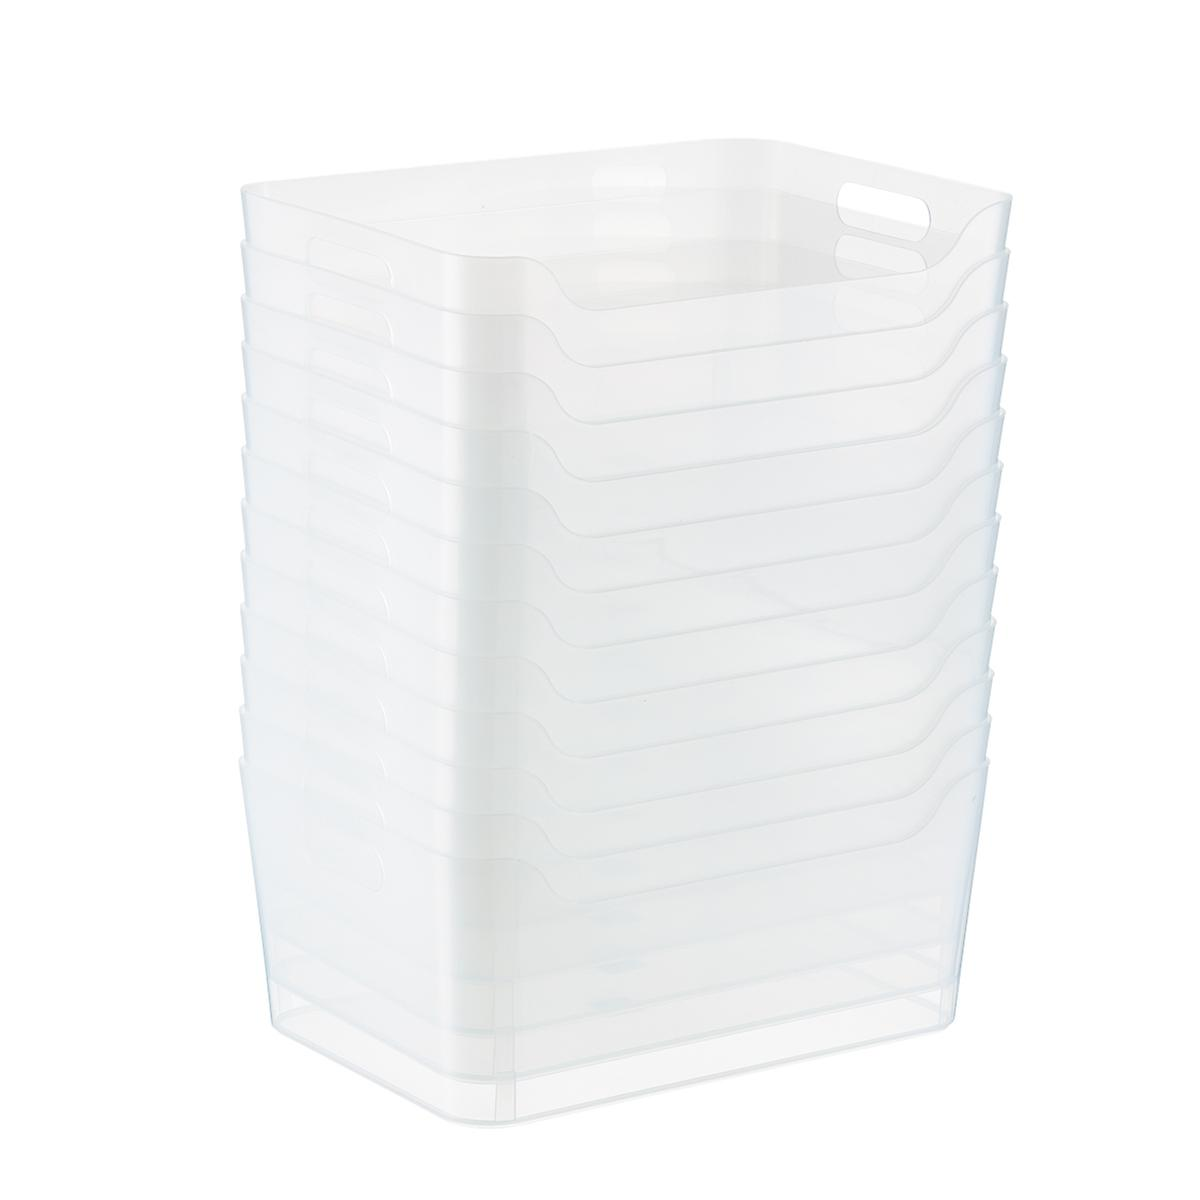 Case of 12 of Clear Plastic Storage Bins with Handles